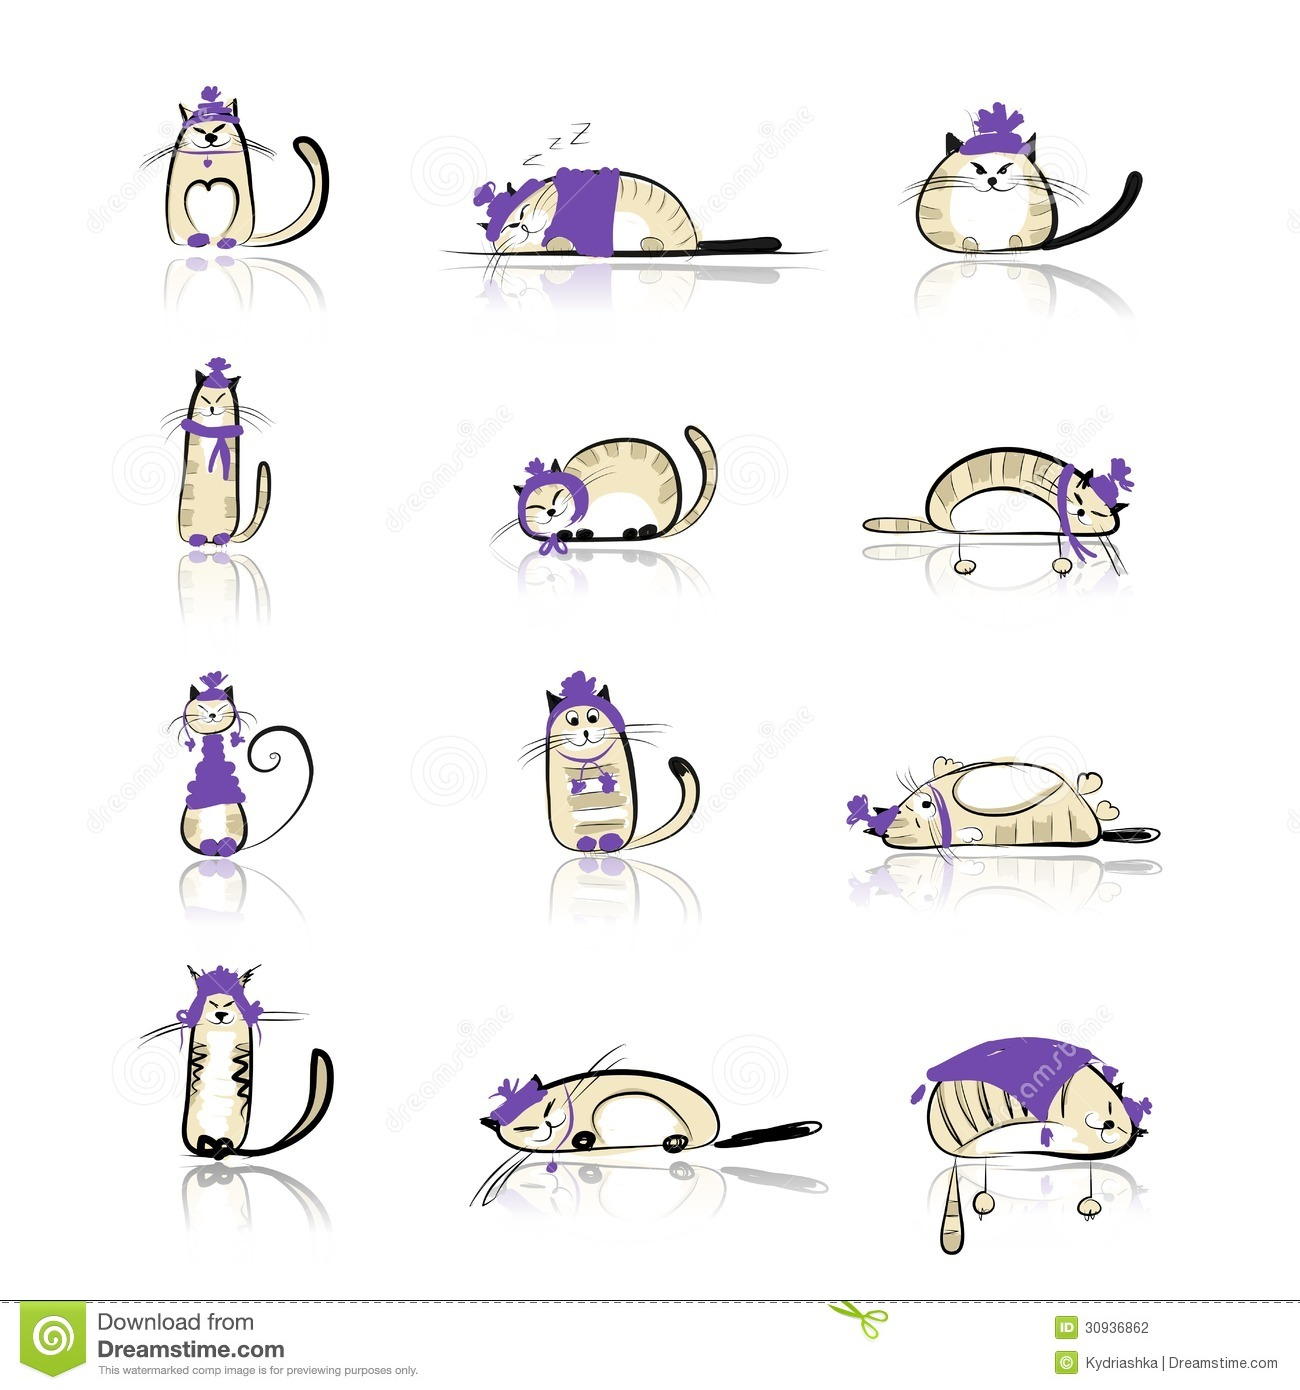 Stock Photography Funny Cats Collection Fashion Clothes Your Design File Eps Format Image30936862 on file symbol thumbs up color